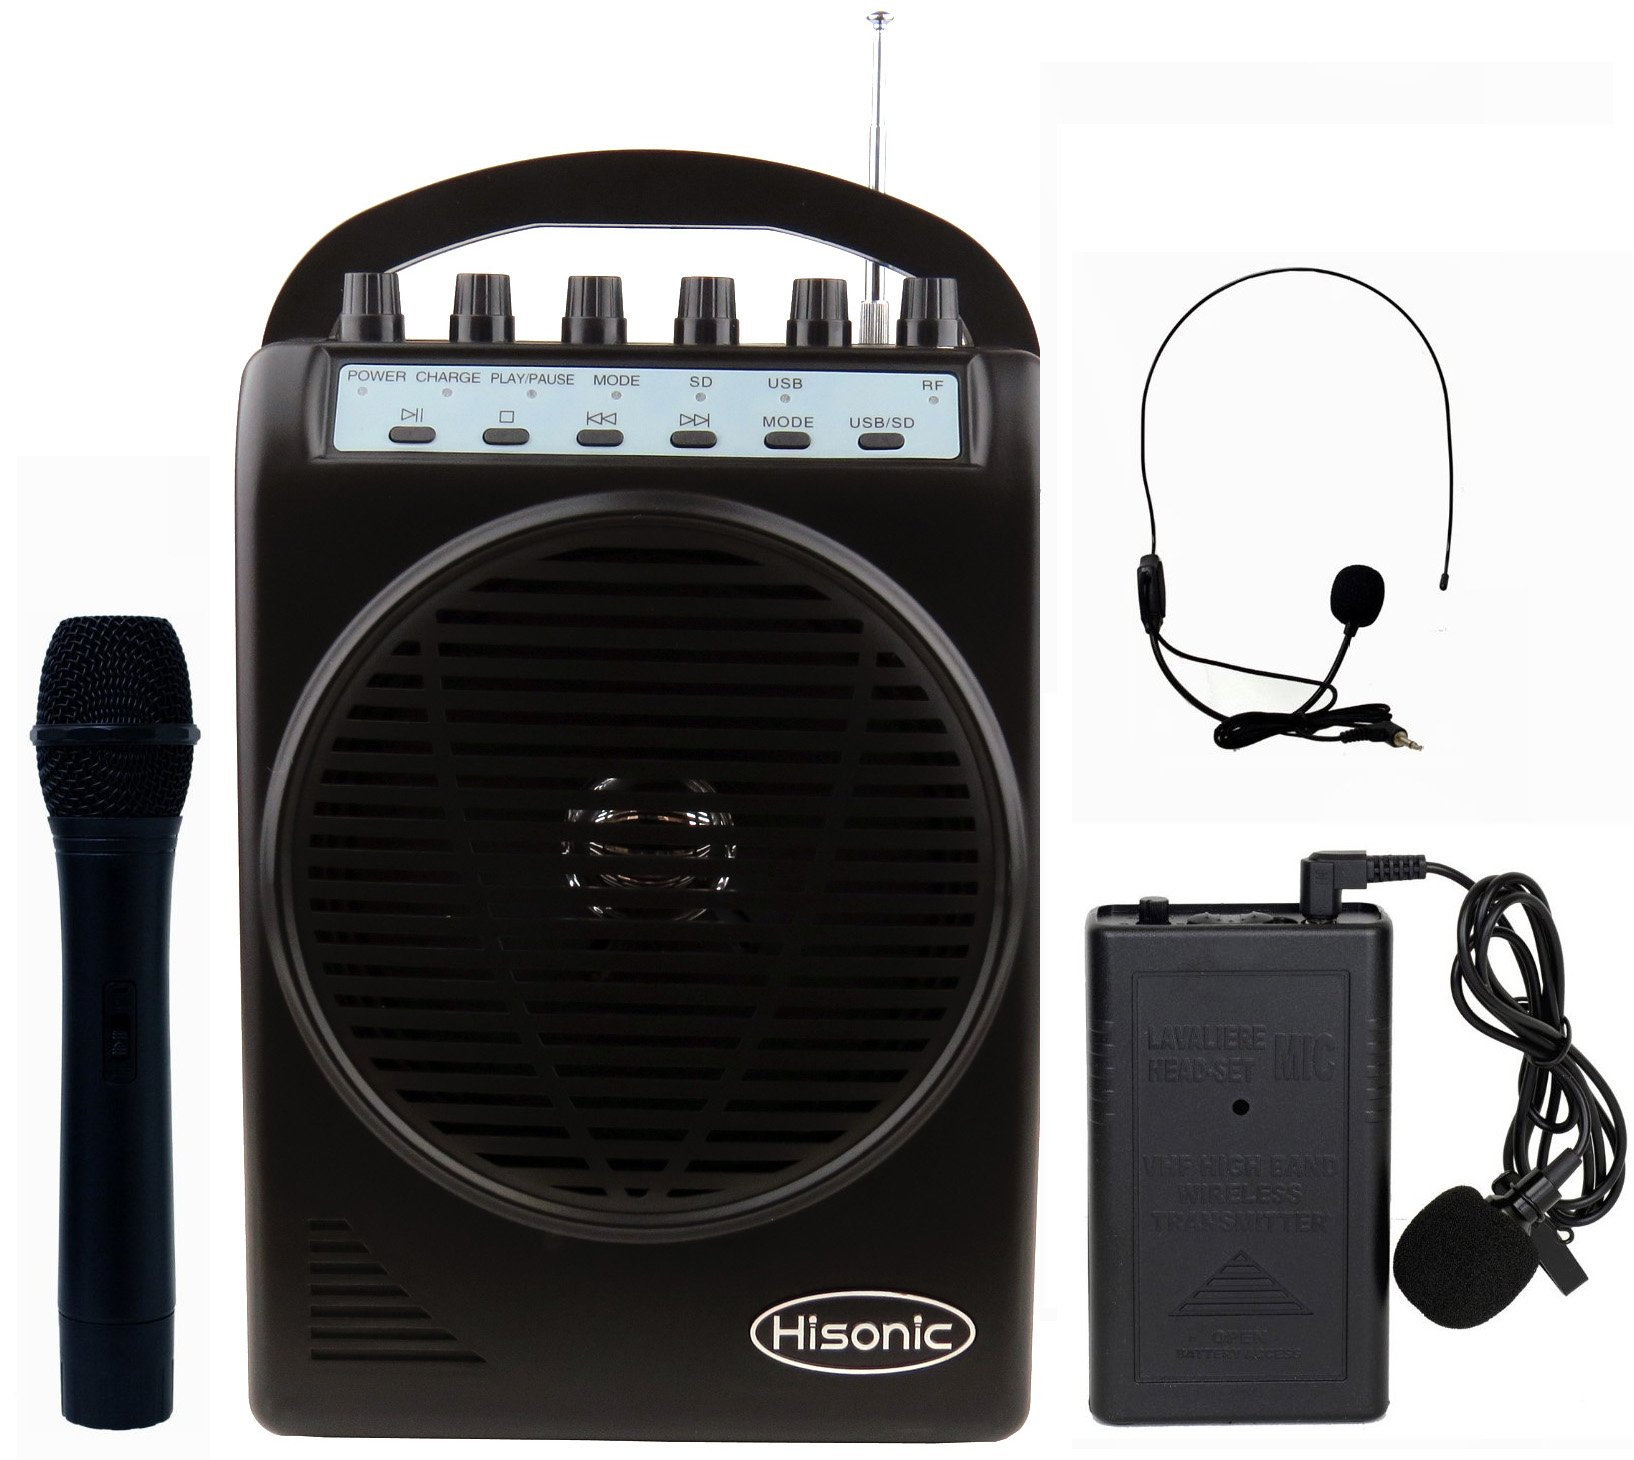 Hisonic HS128MP3 Lithium Rechargeable Battery Wireless Portable PA System with USB & SD Port MP3 Player with Car Cigarette Lighter Cable (HS120B+MP3 Player Black) by Hisonic